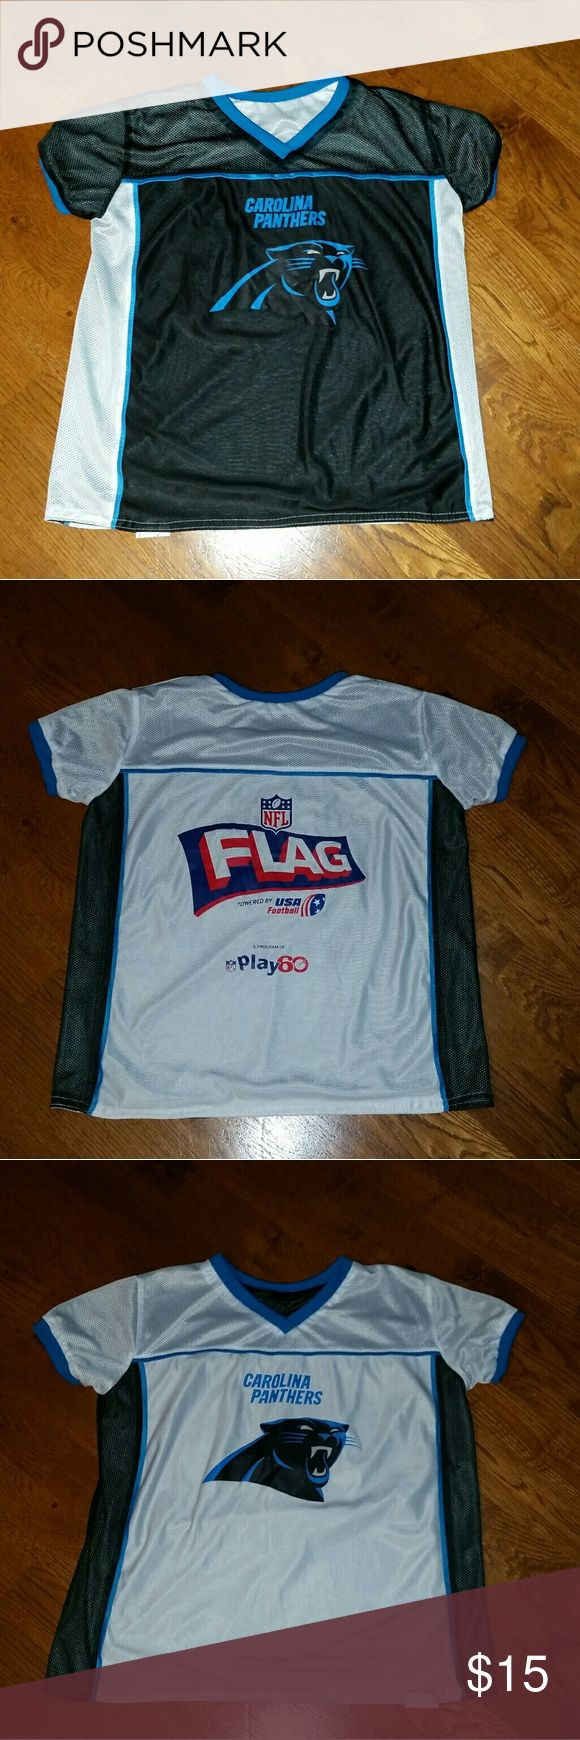 Panthers Reversible NFL Flag Football Jersey YLG Official Boy's Carolina Panthers Reversible NFL Flag Football Jersey Size YLG. Great condition. There are a few cracks on the logos from washing. See cracking in the pictures above. All items come from a smoke-free home. There are no refunds and no returns so please ask questions before purchasing. Thank you! NFL Other